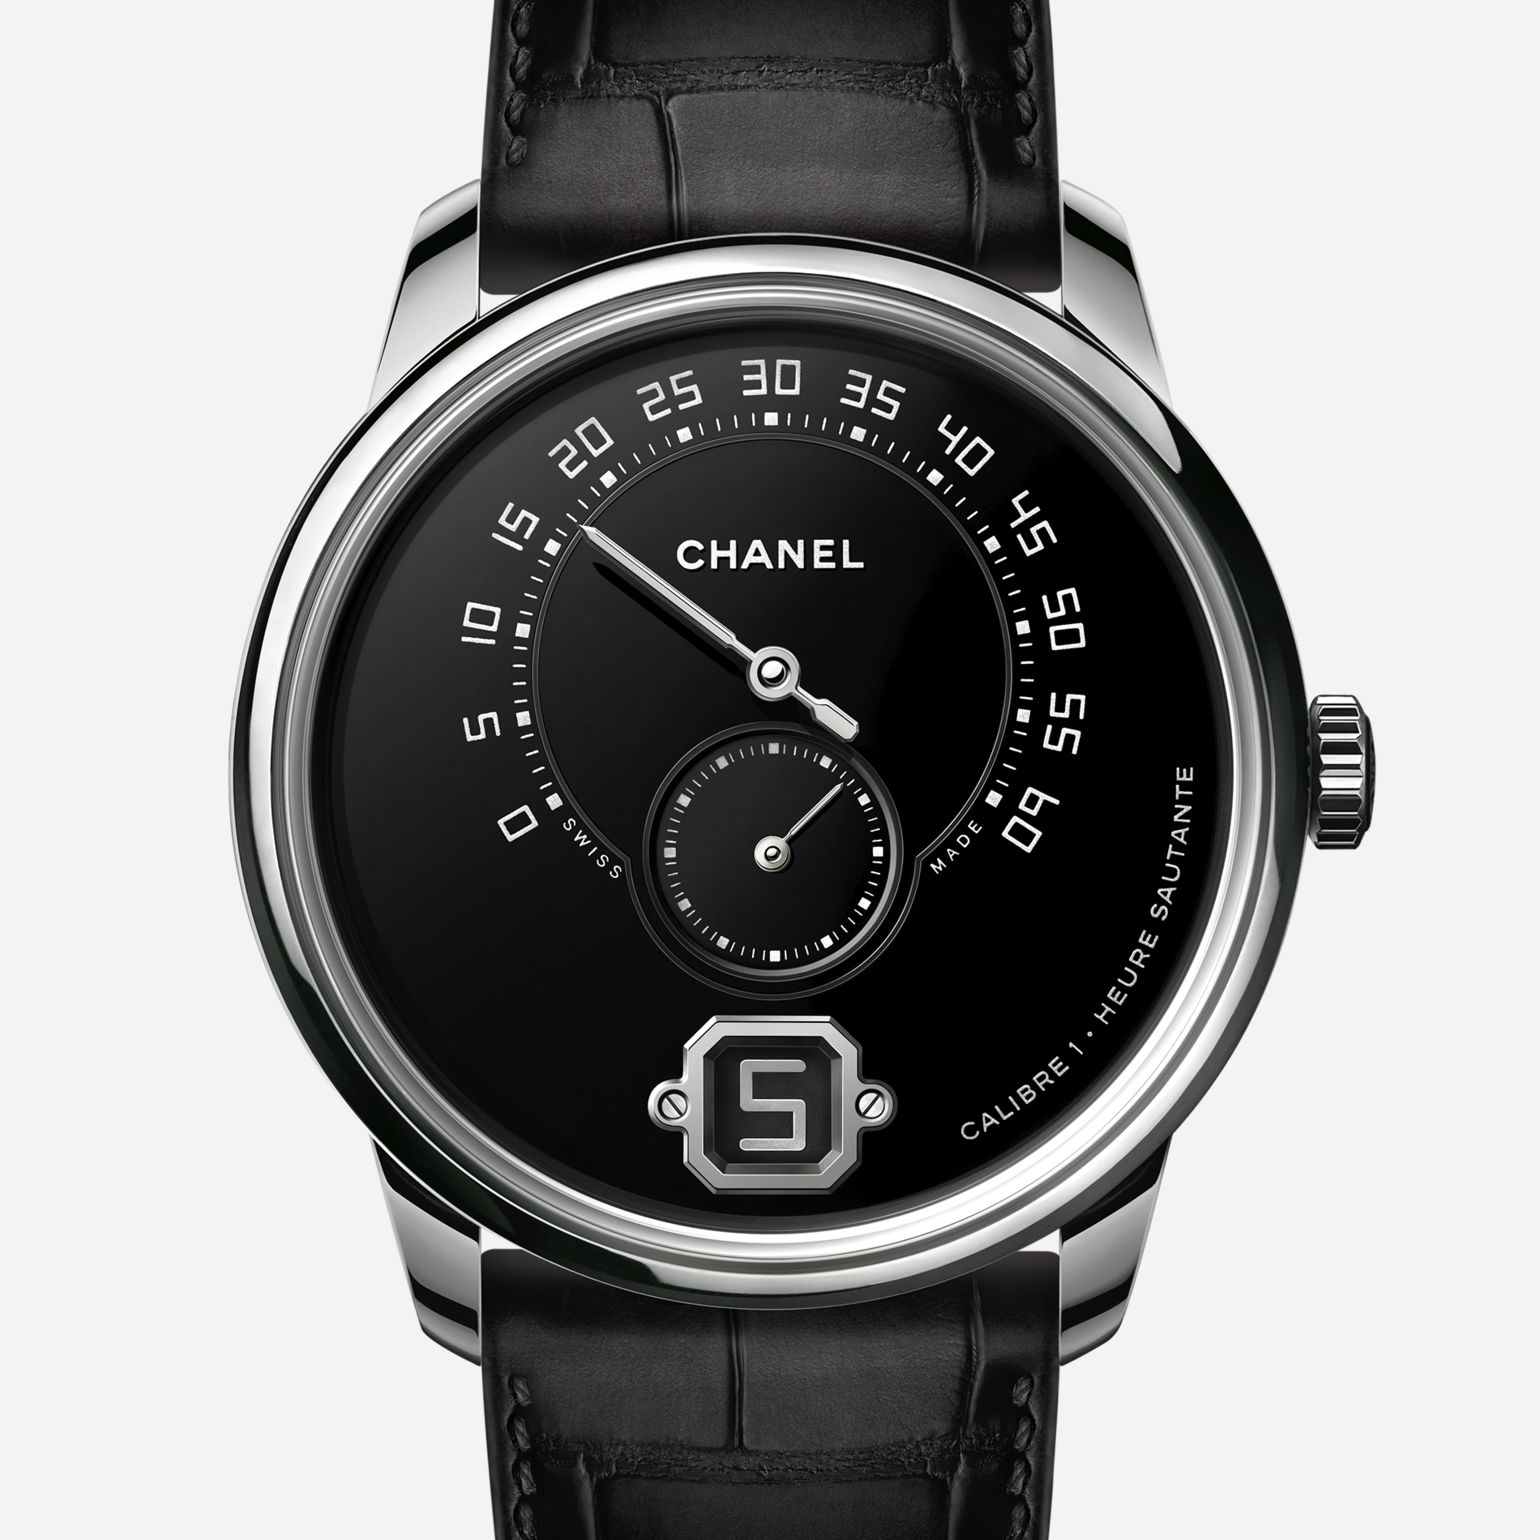 Monsieur Watch Platinum, « Grand Feu » enamel dial with jumping hour, 240° retrograde minute and small second counter